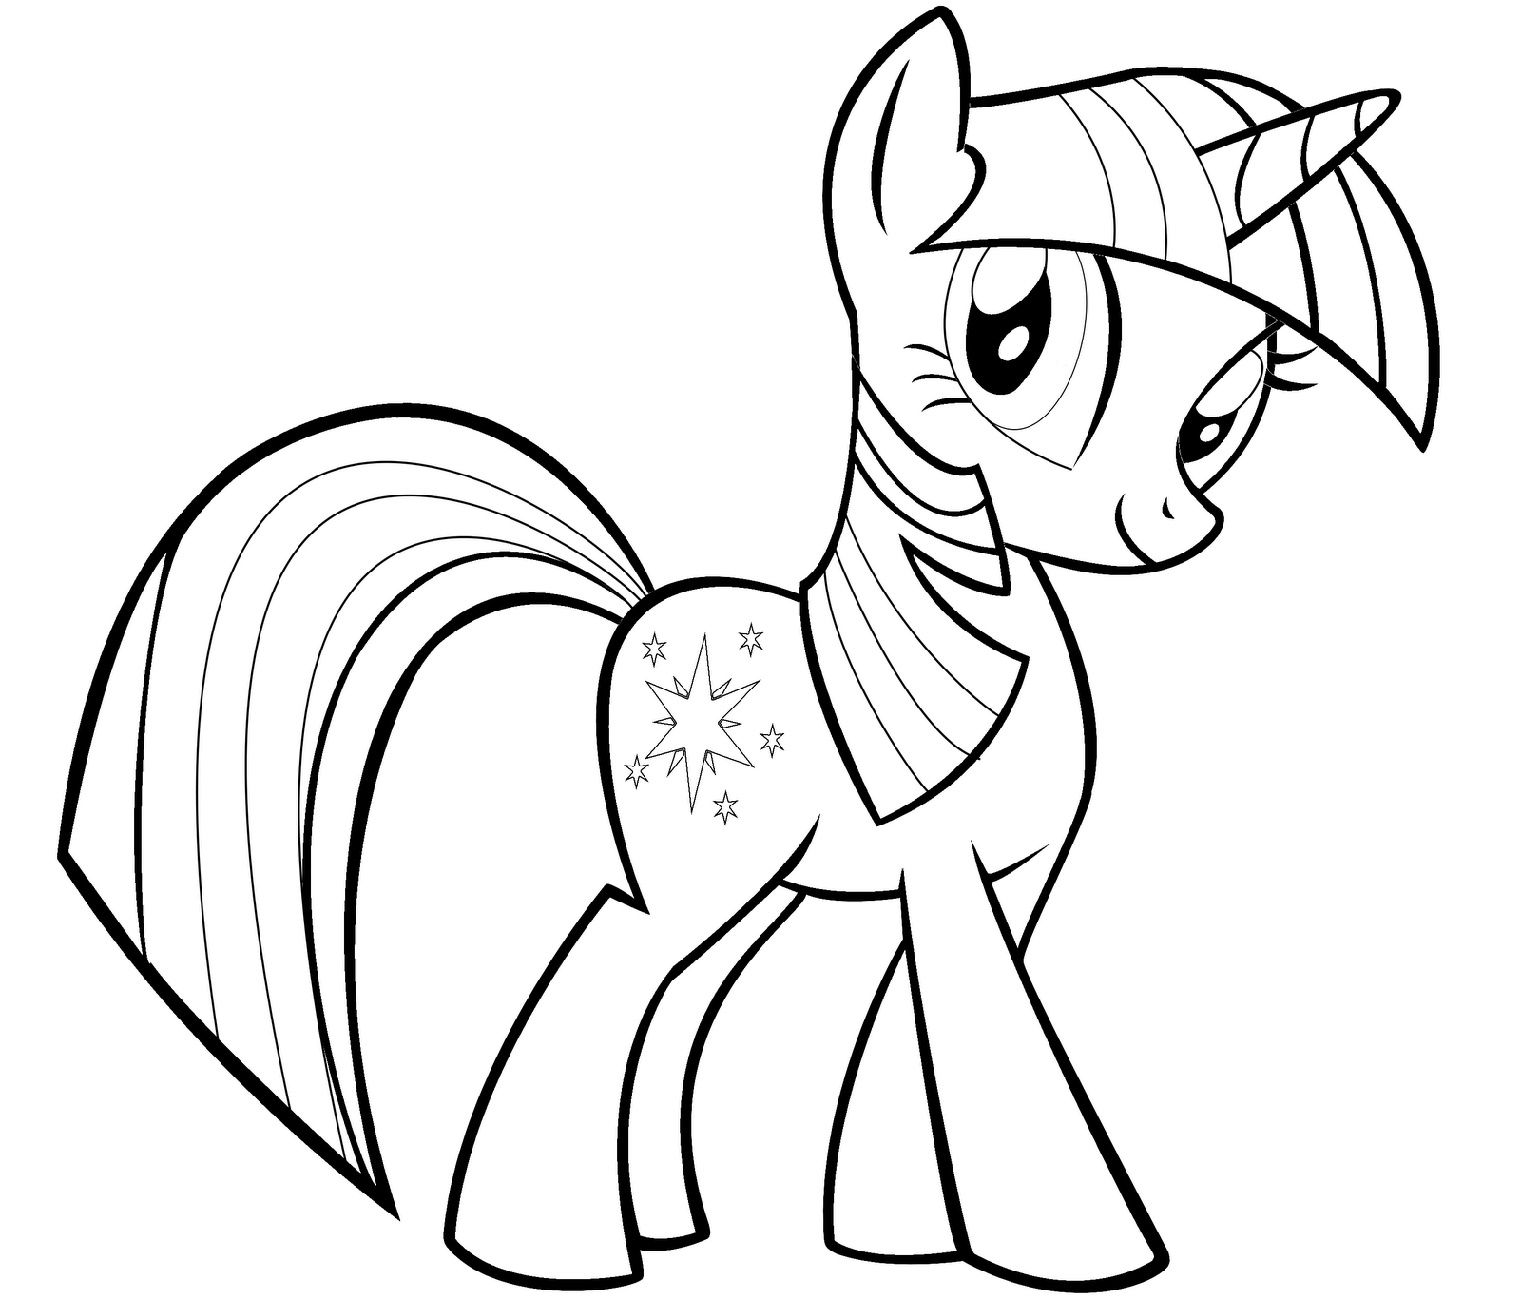 Alicorn Coloring Pages For Kids K5 Worksheets My Little Pony Coloring Coloring Pages Pokemon Coloring Pages